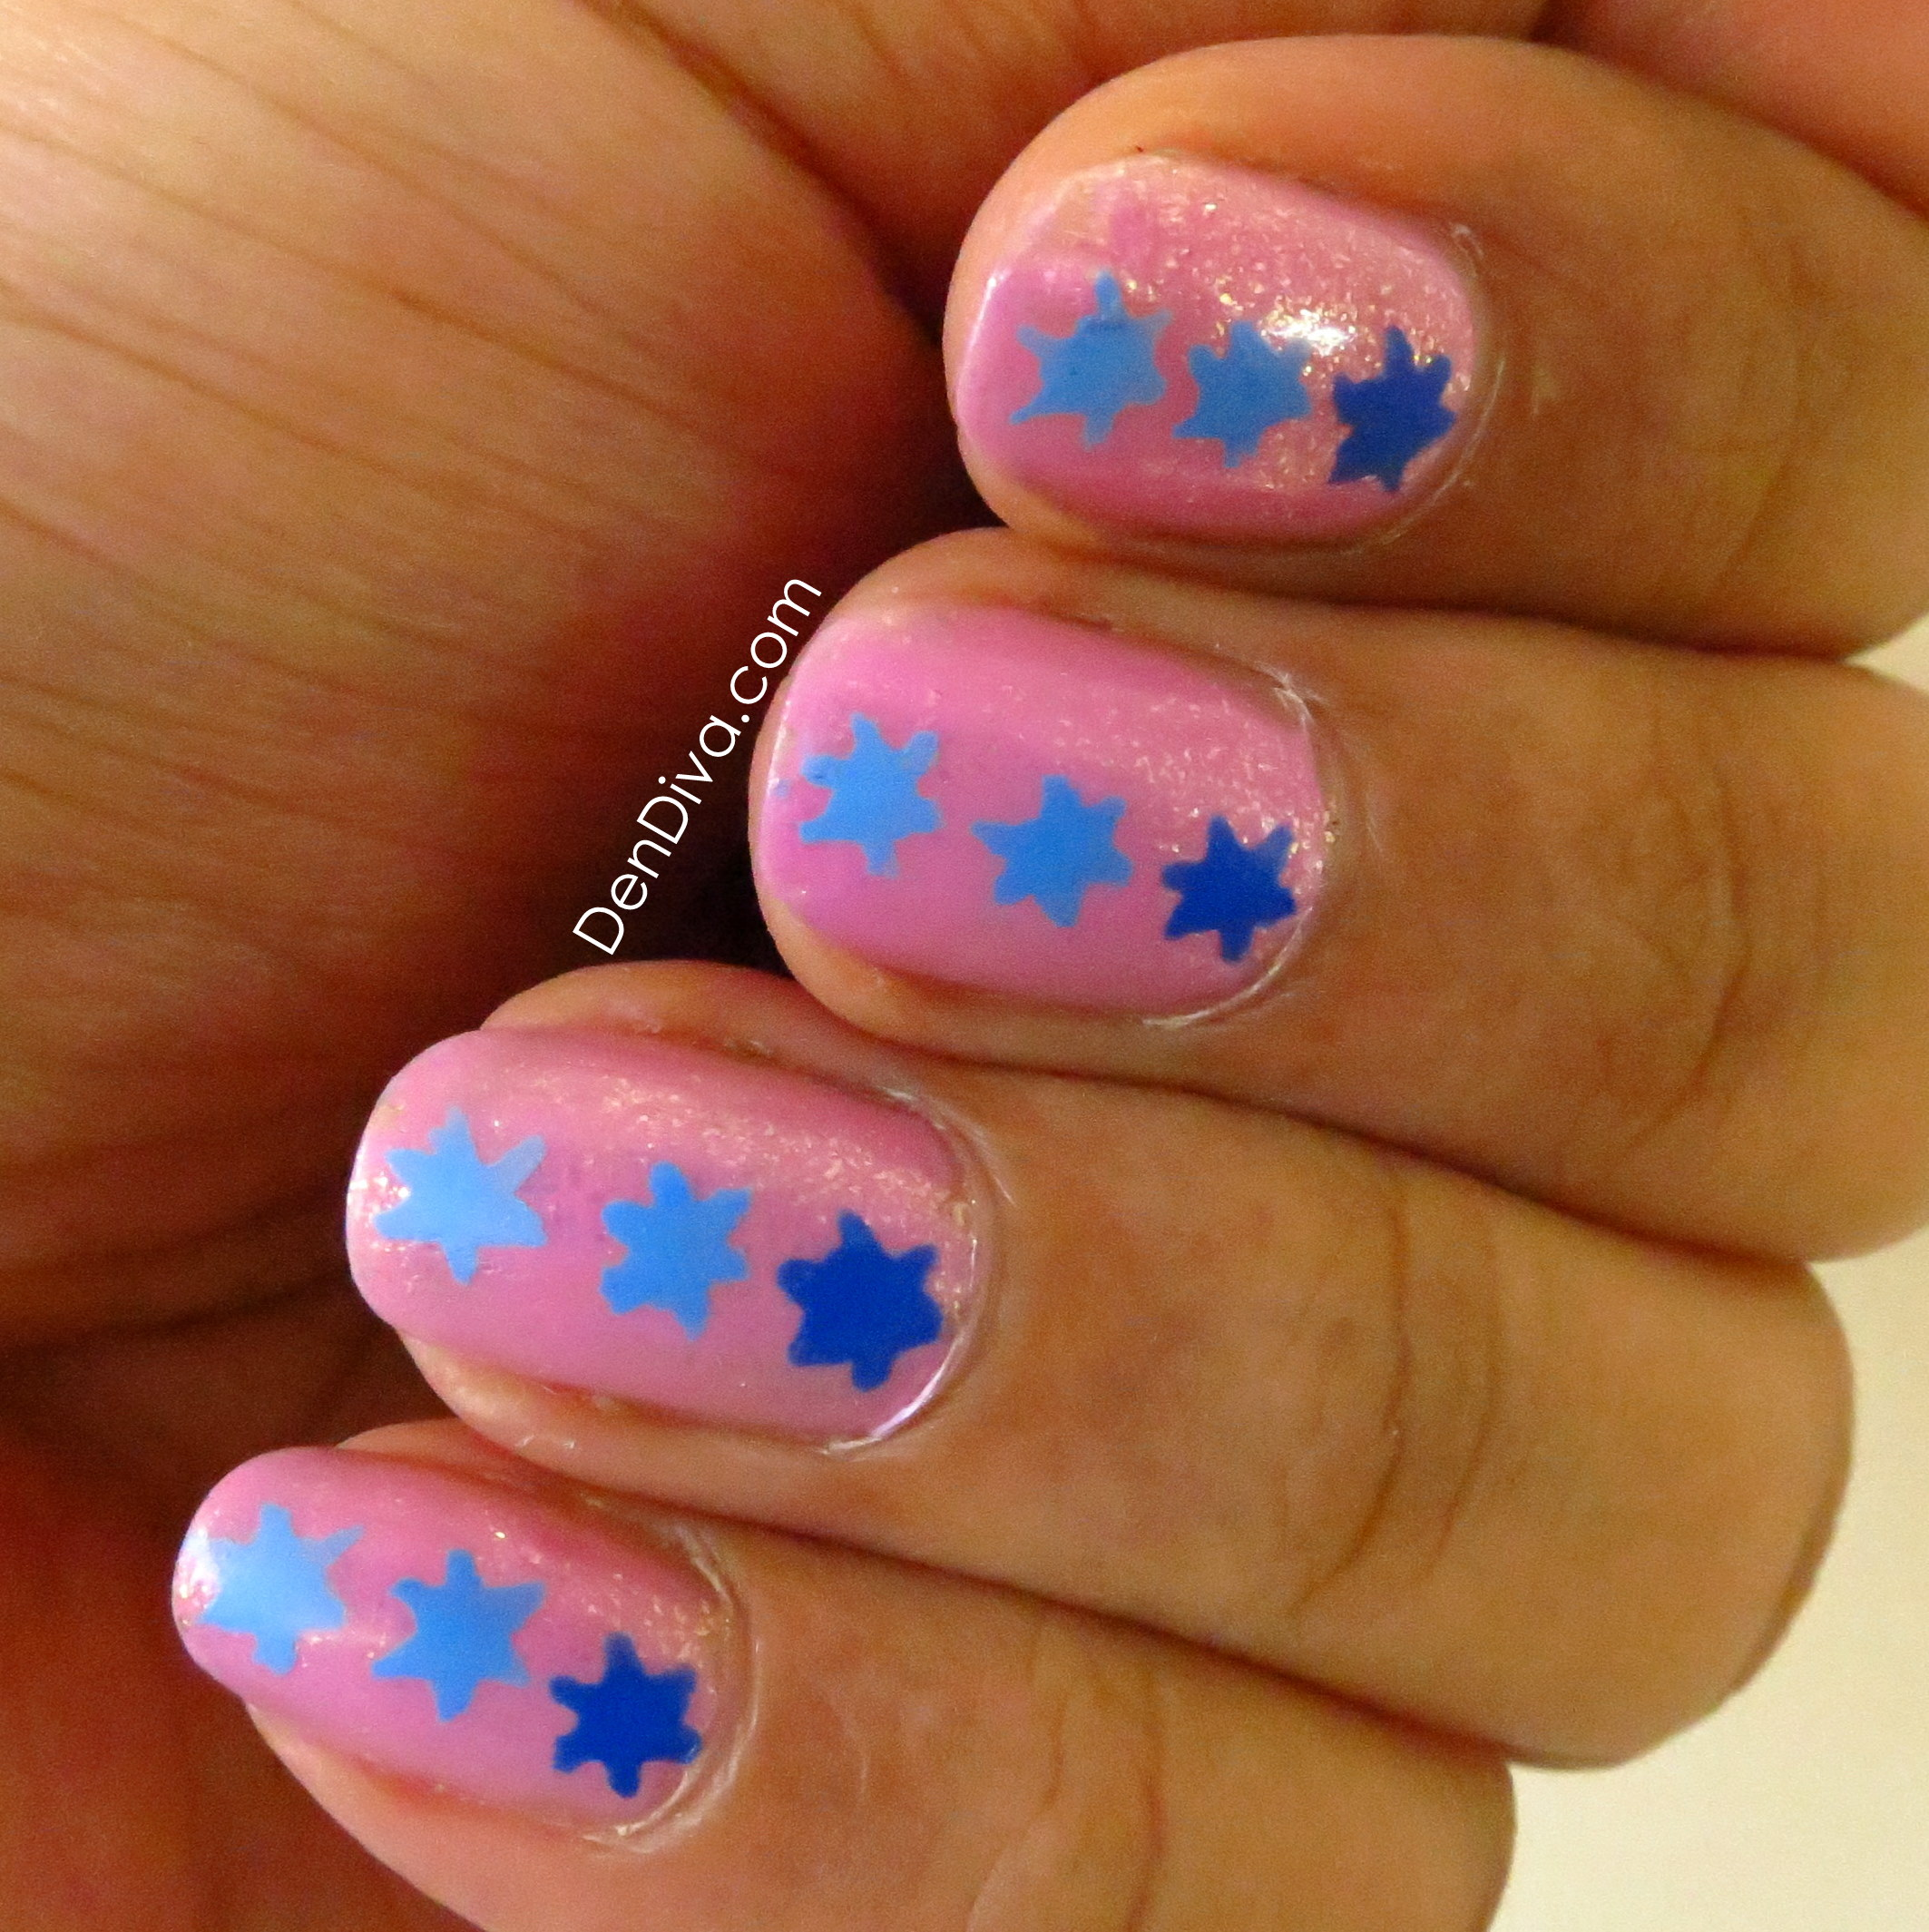 Easy nail art for beginners - Gradient Star Nails